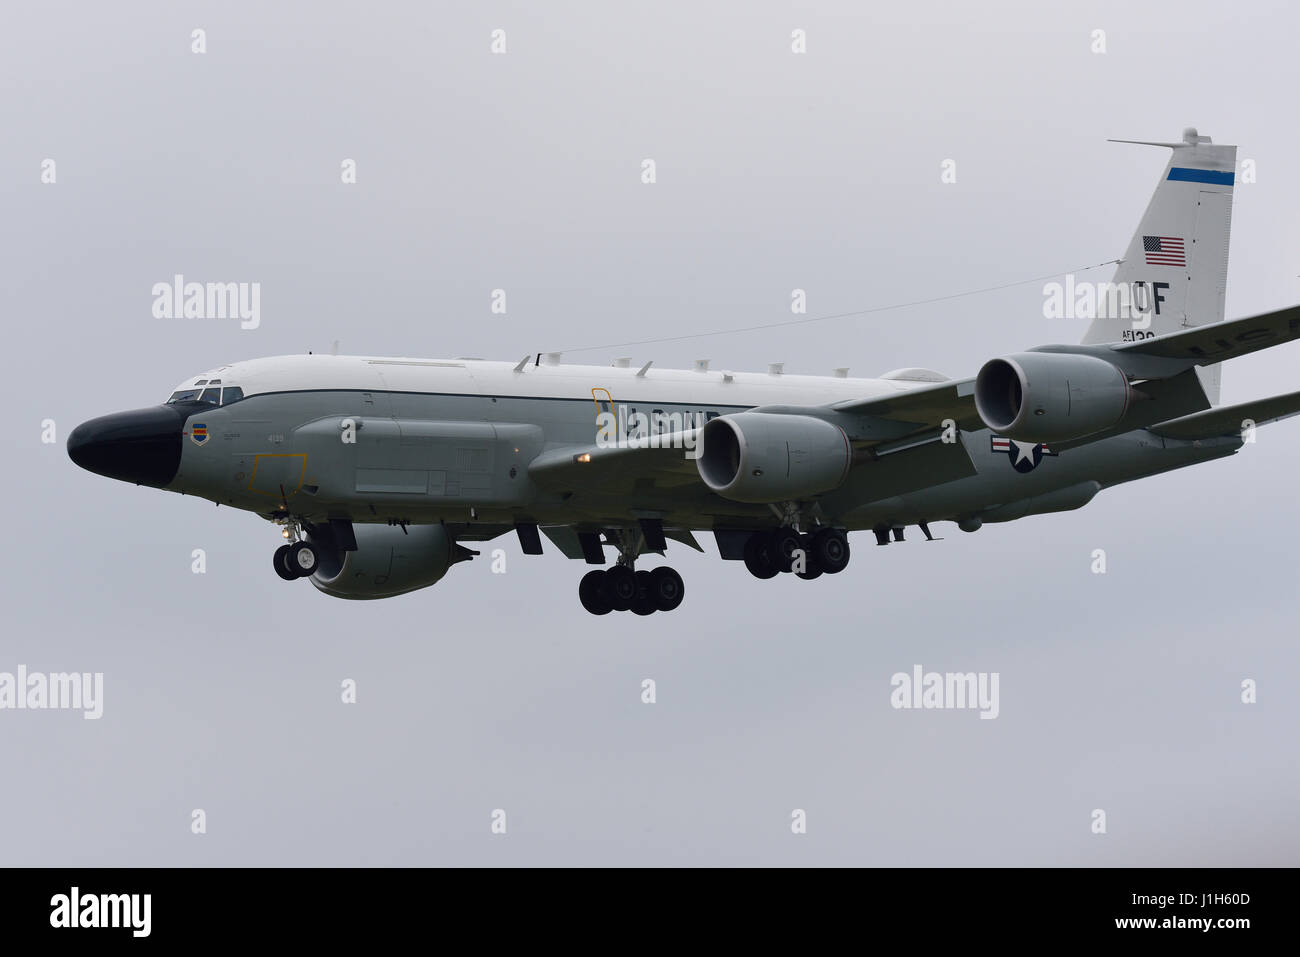 Boeing RC-135W Rivet Joint SIGINT platform - Signals Intelligence - 'Spy Plane' based at Offutt Air Force - Stock Image